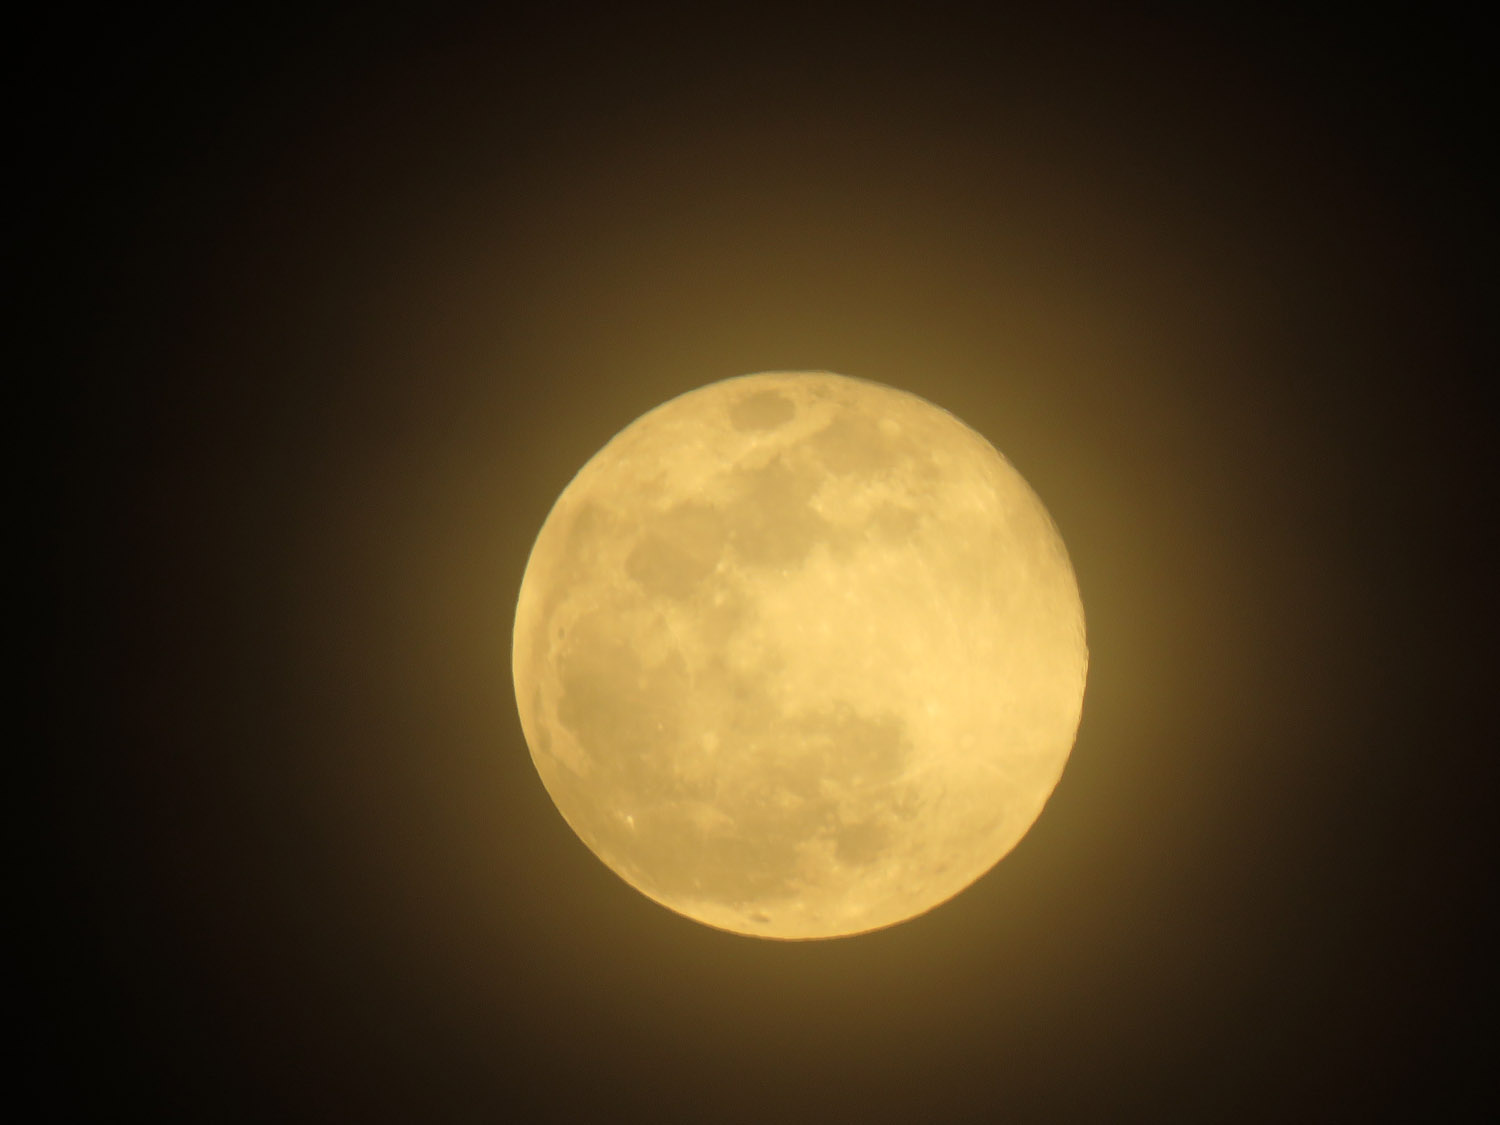 The supermoon in all its glory, February 19